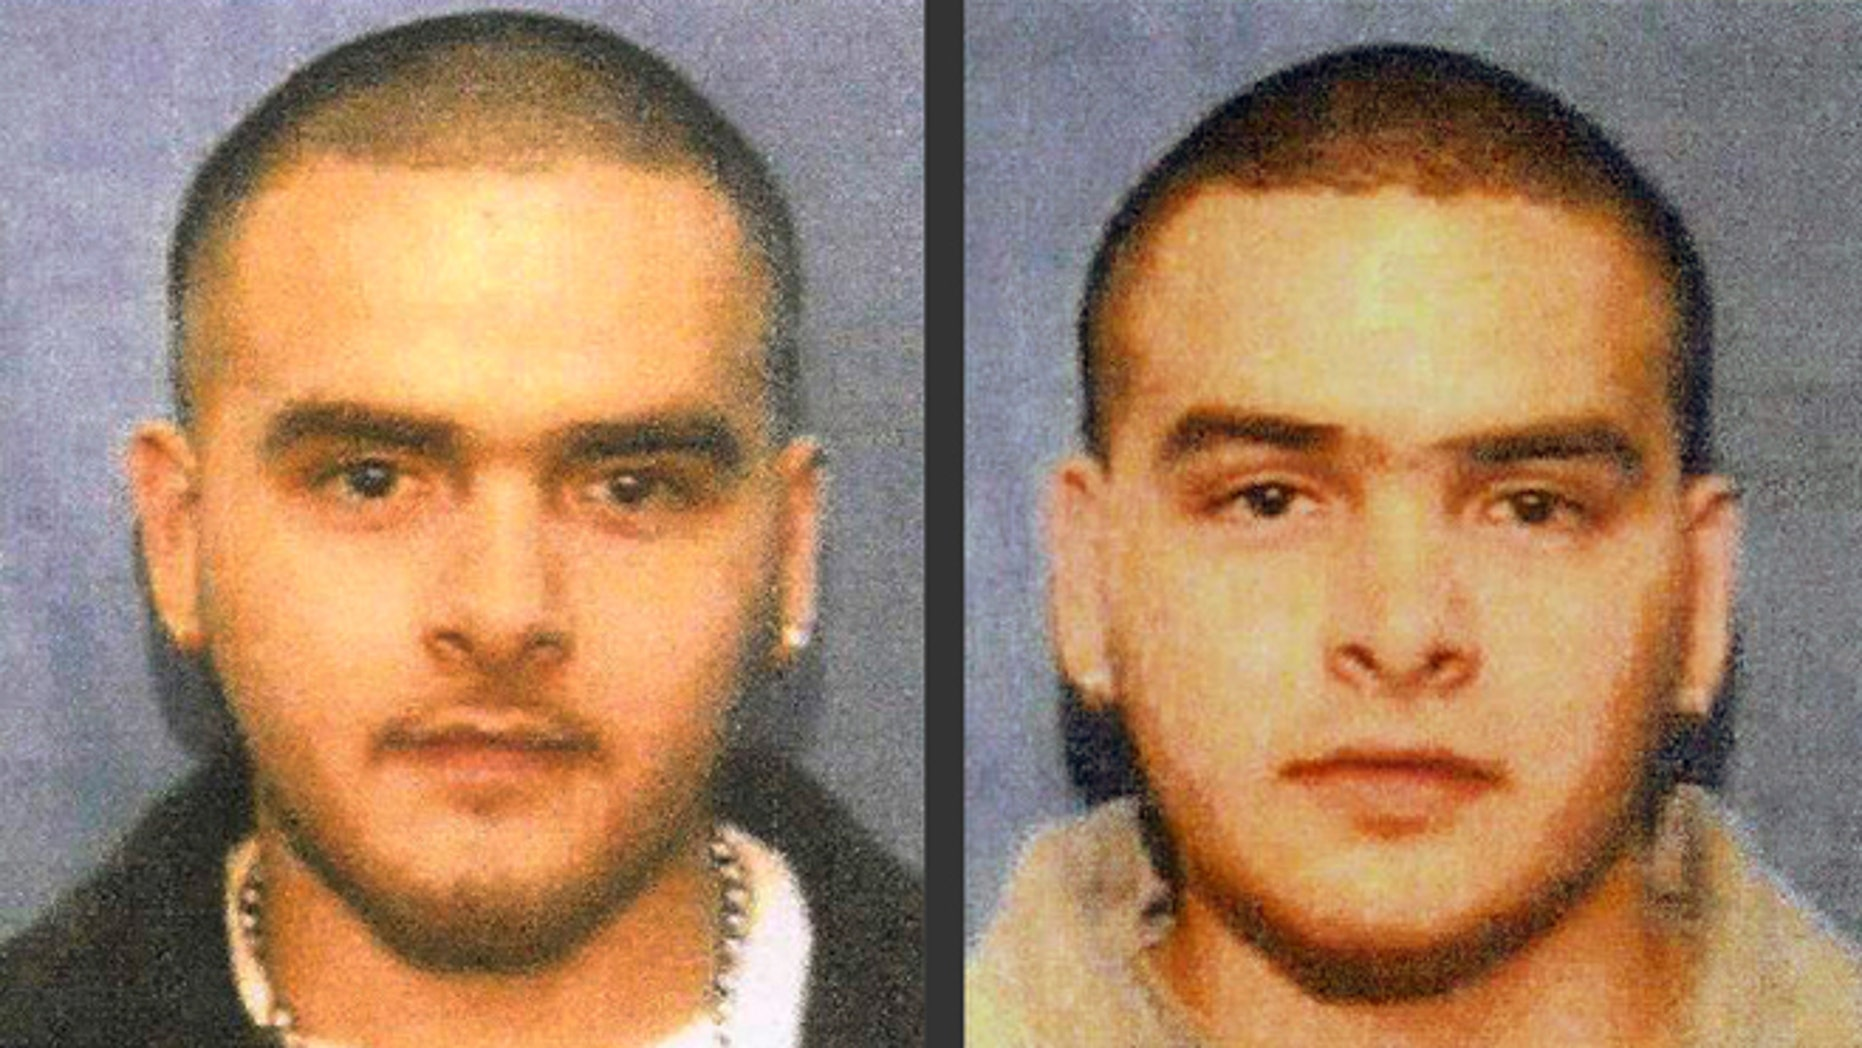 Lenient prison term expected for twins who snitched on